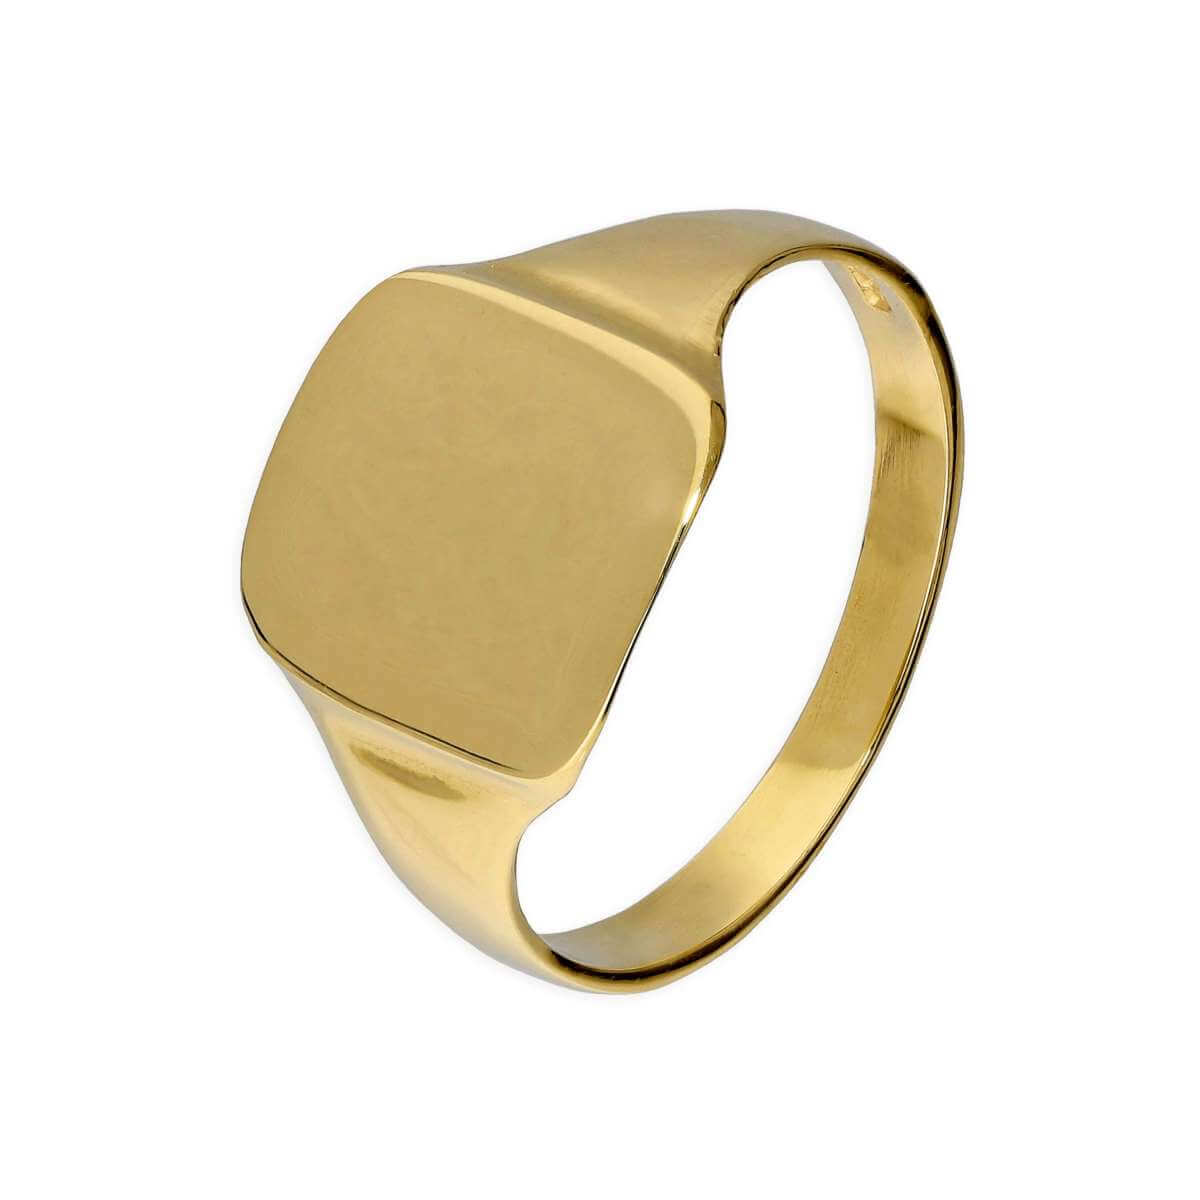 9ct Gold Engravable Gents Large Square Signet Ring Size R - W